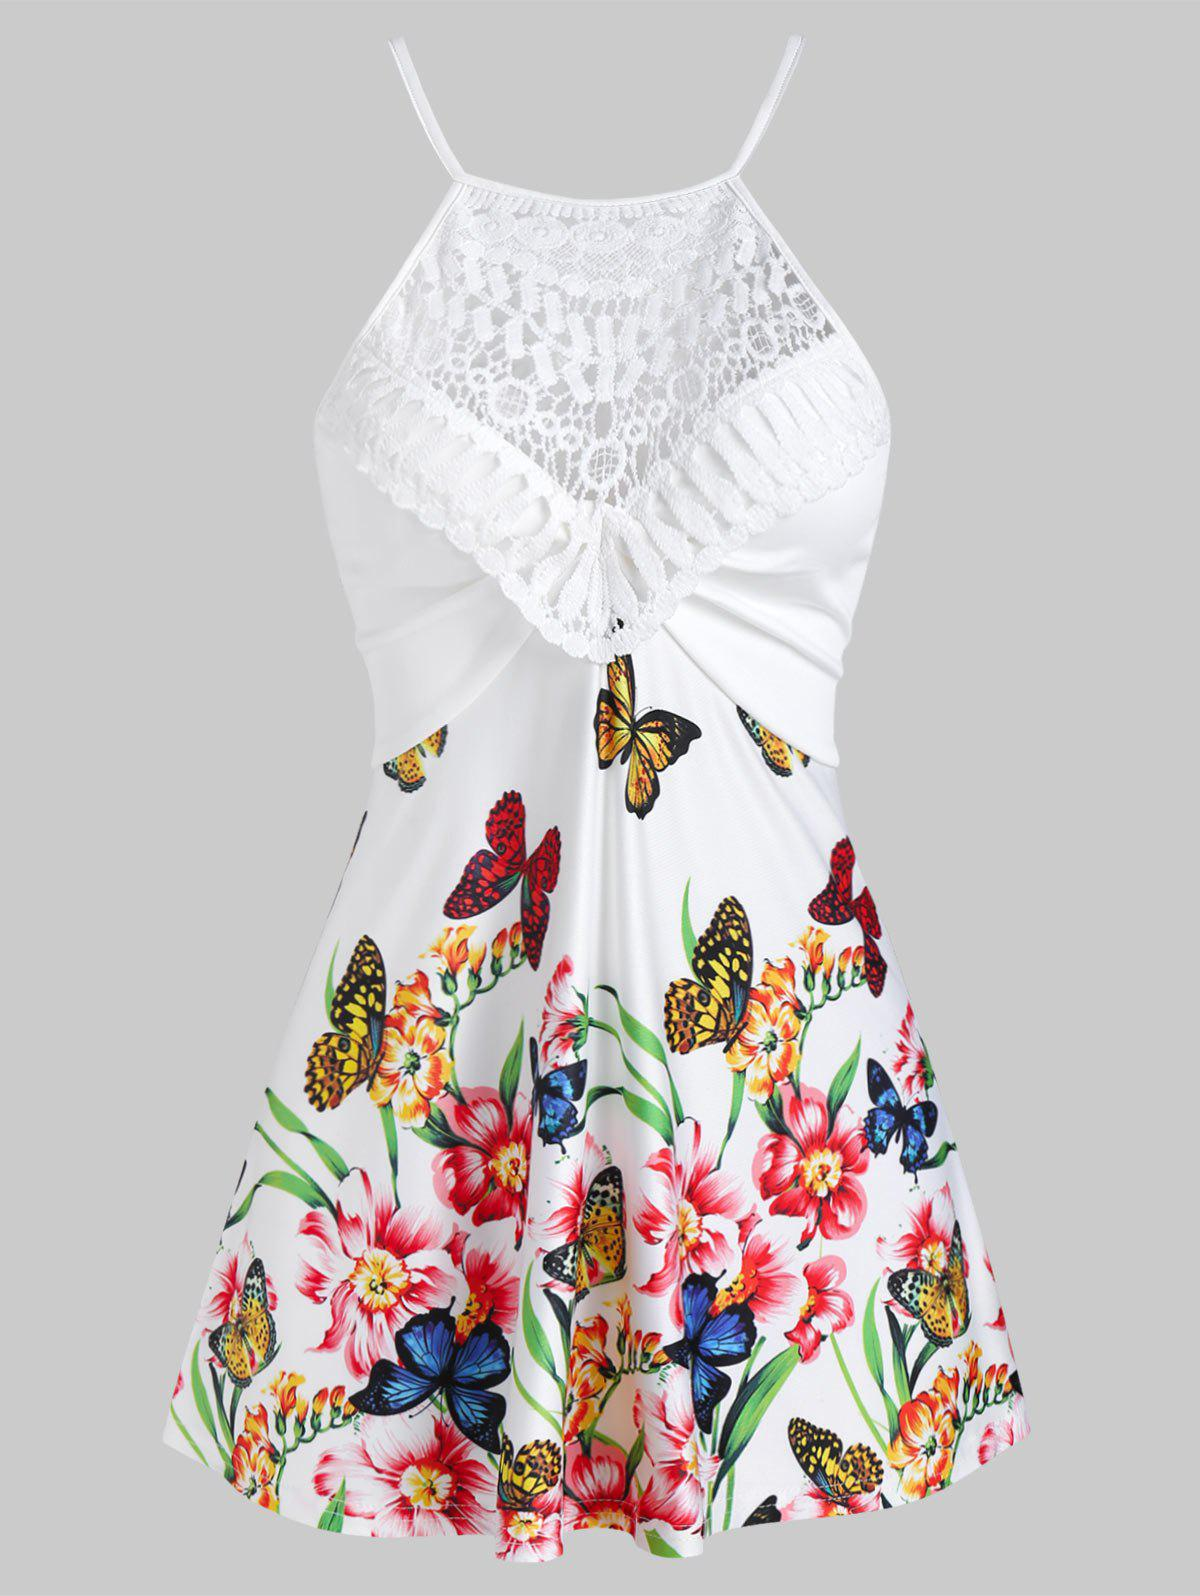 Butterflies and Flowers Print Lace Insert Cami Top - WHITE M